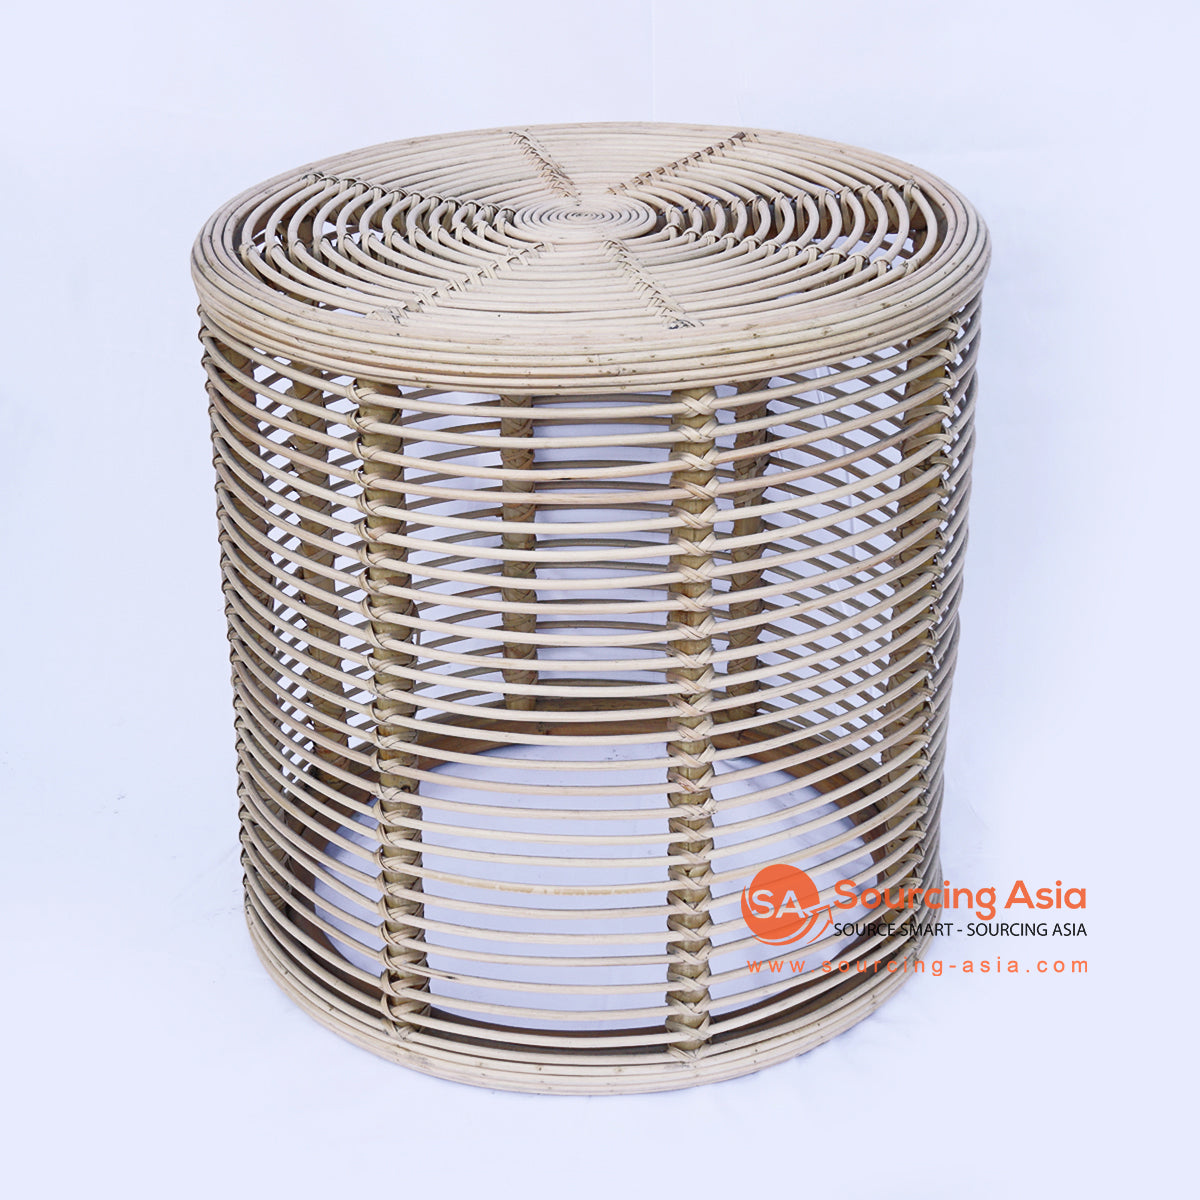 BNTC006-5 ROUND RATTAN GAPED SIDE TABLE